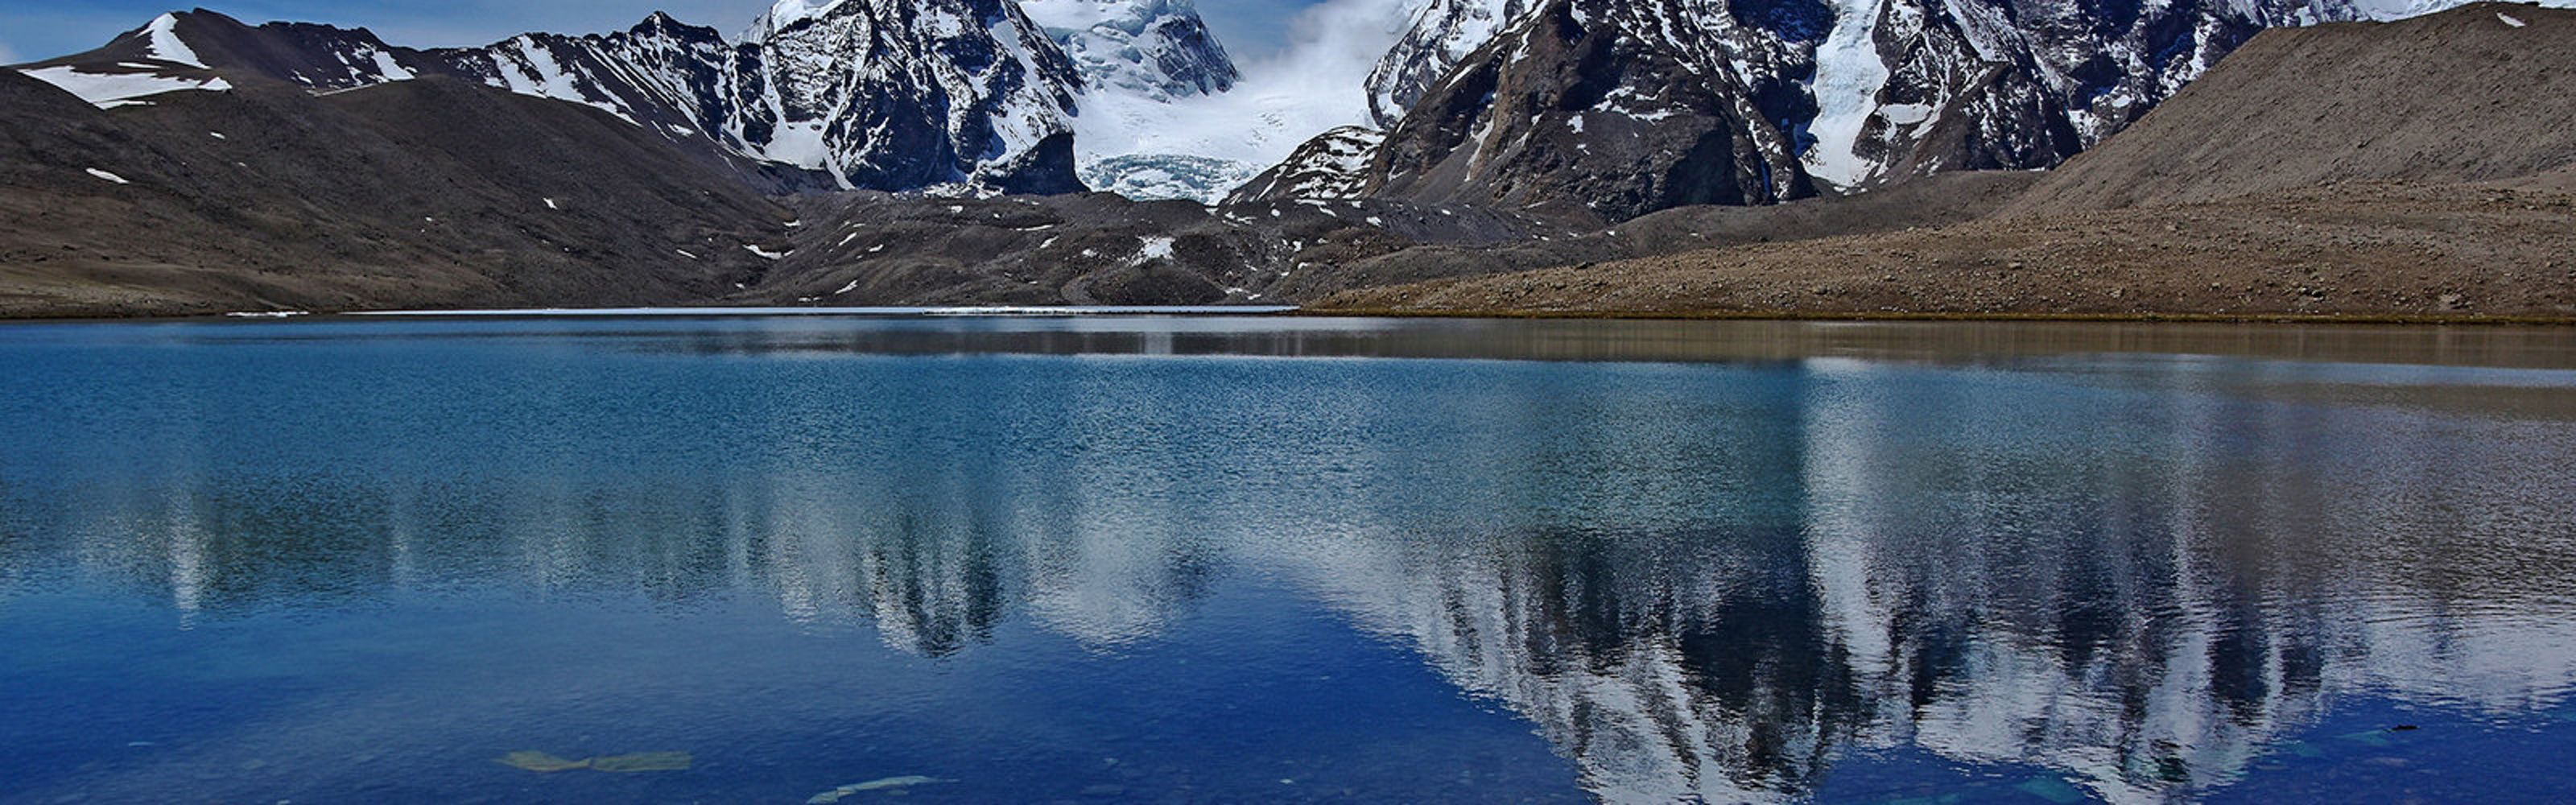 Gurudongmar Lake reflects mountains in the background in Sikkim, India.